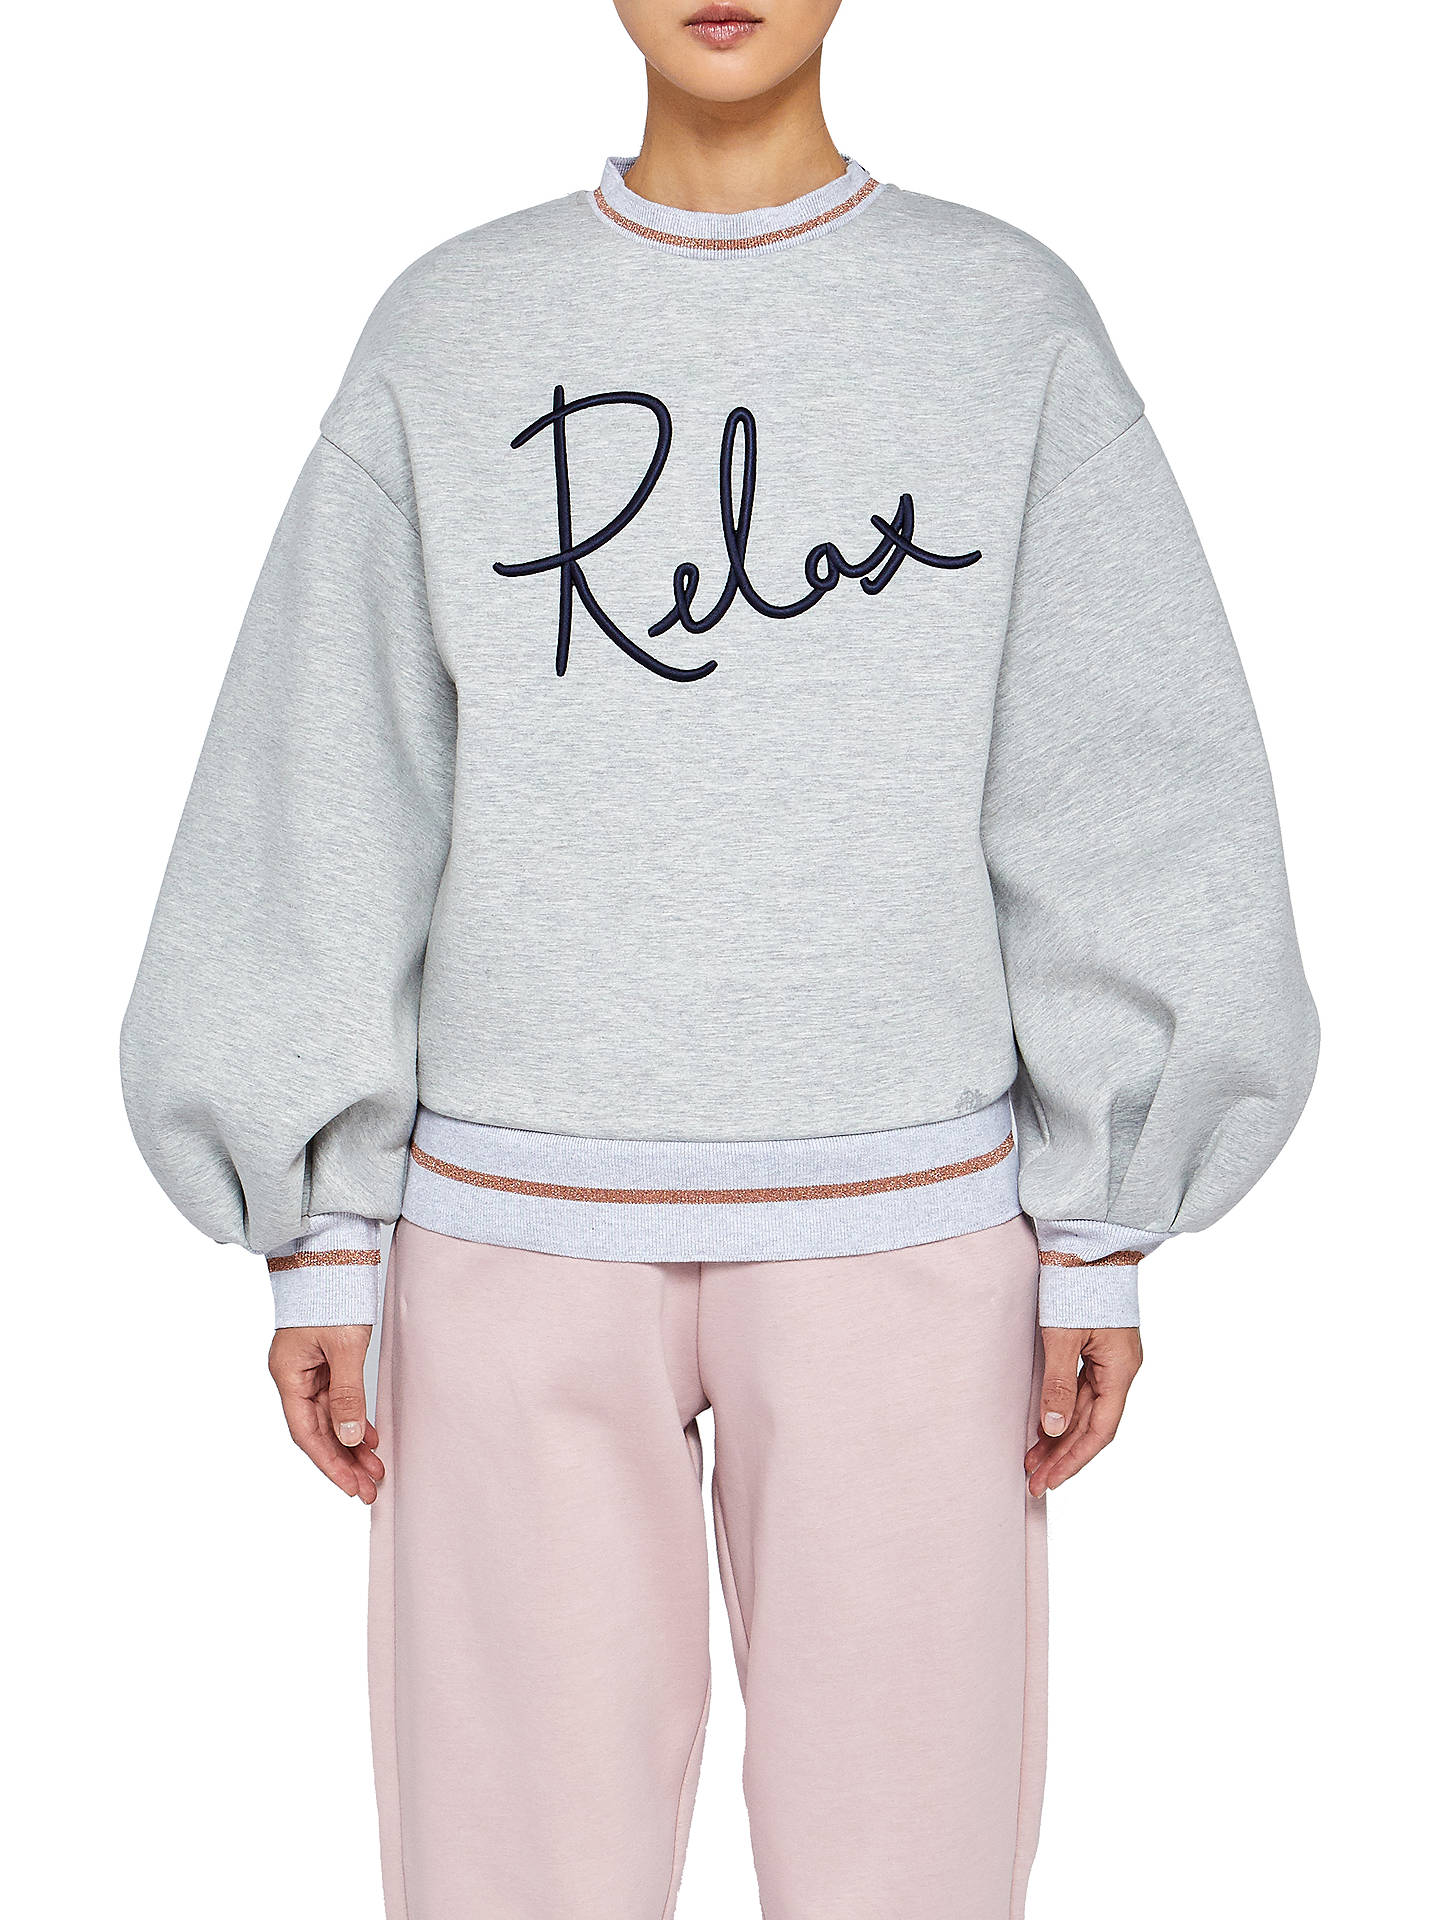 4ef4080a7 Buy Ted Baker Ted Says Relax Rylieei Logo Sweatshirt